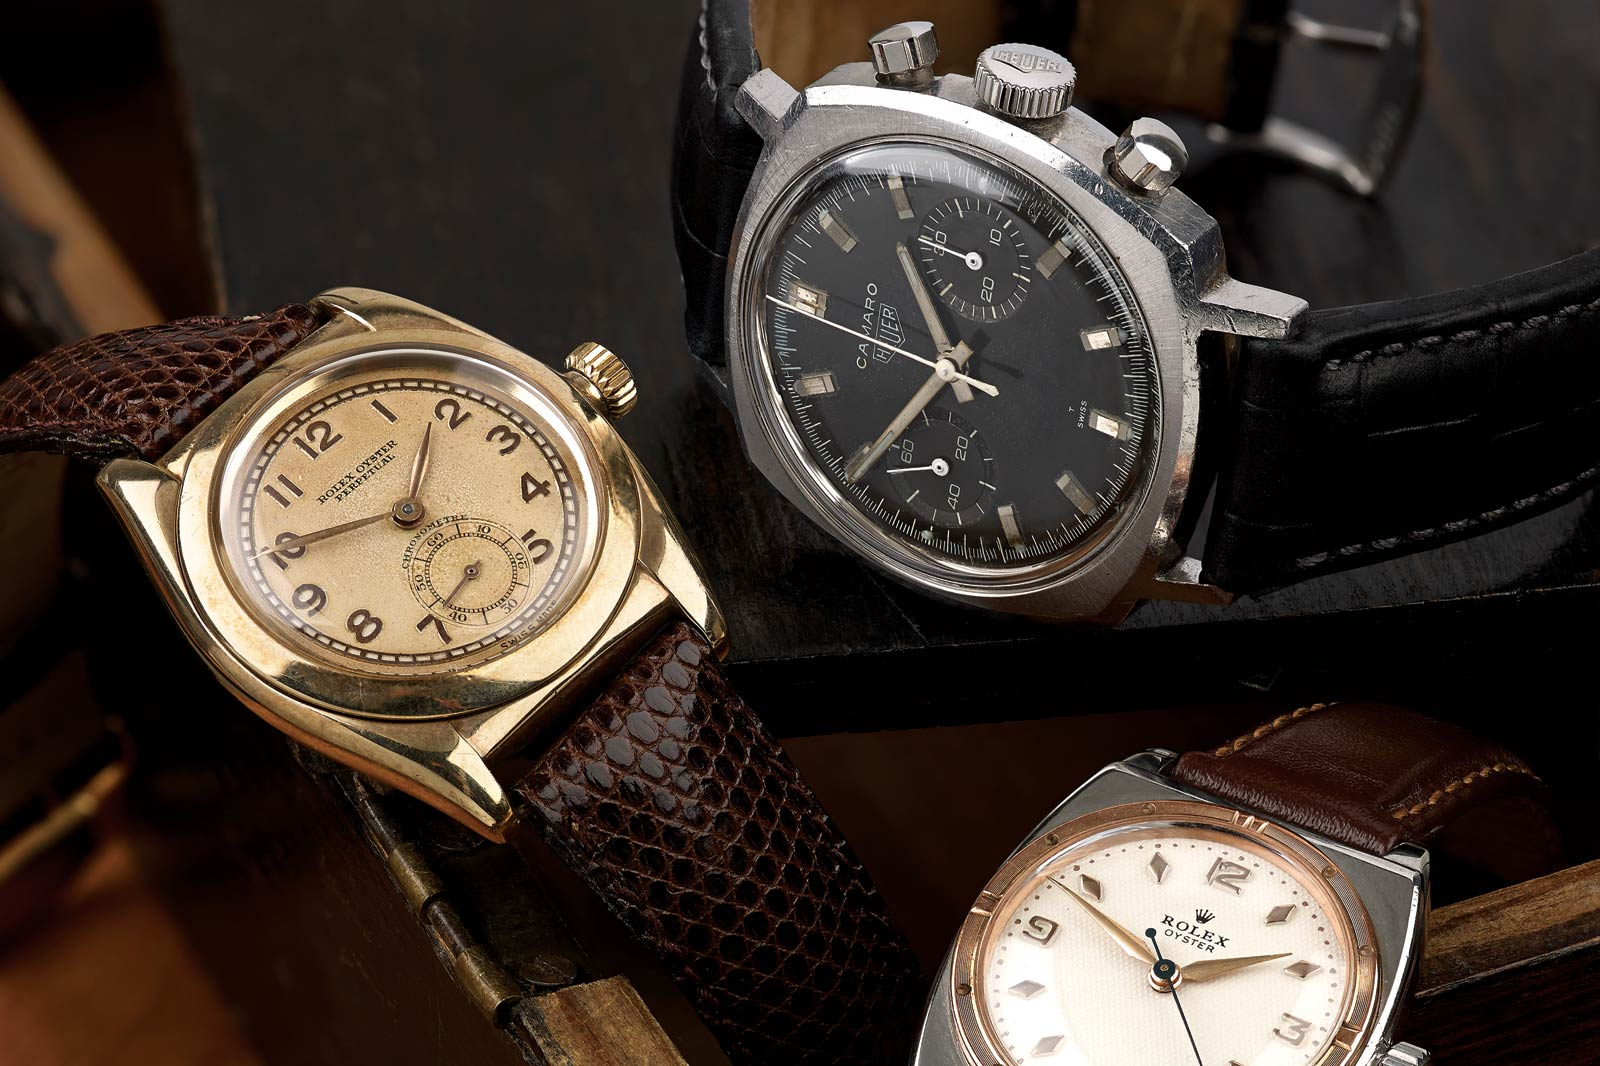 Three Affordable Vintage Omega Watches from the '70s